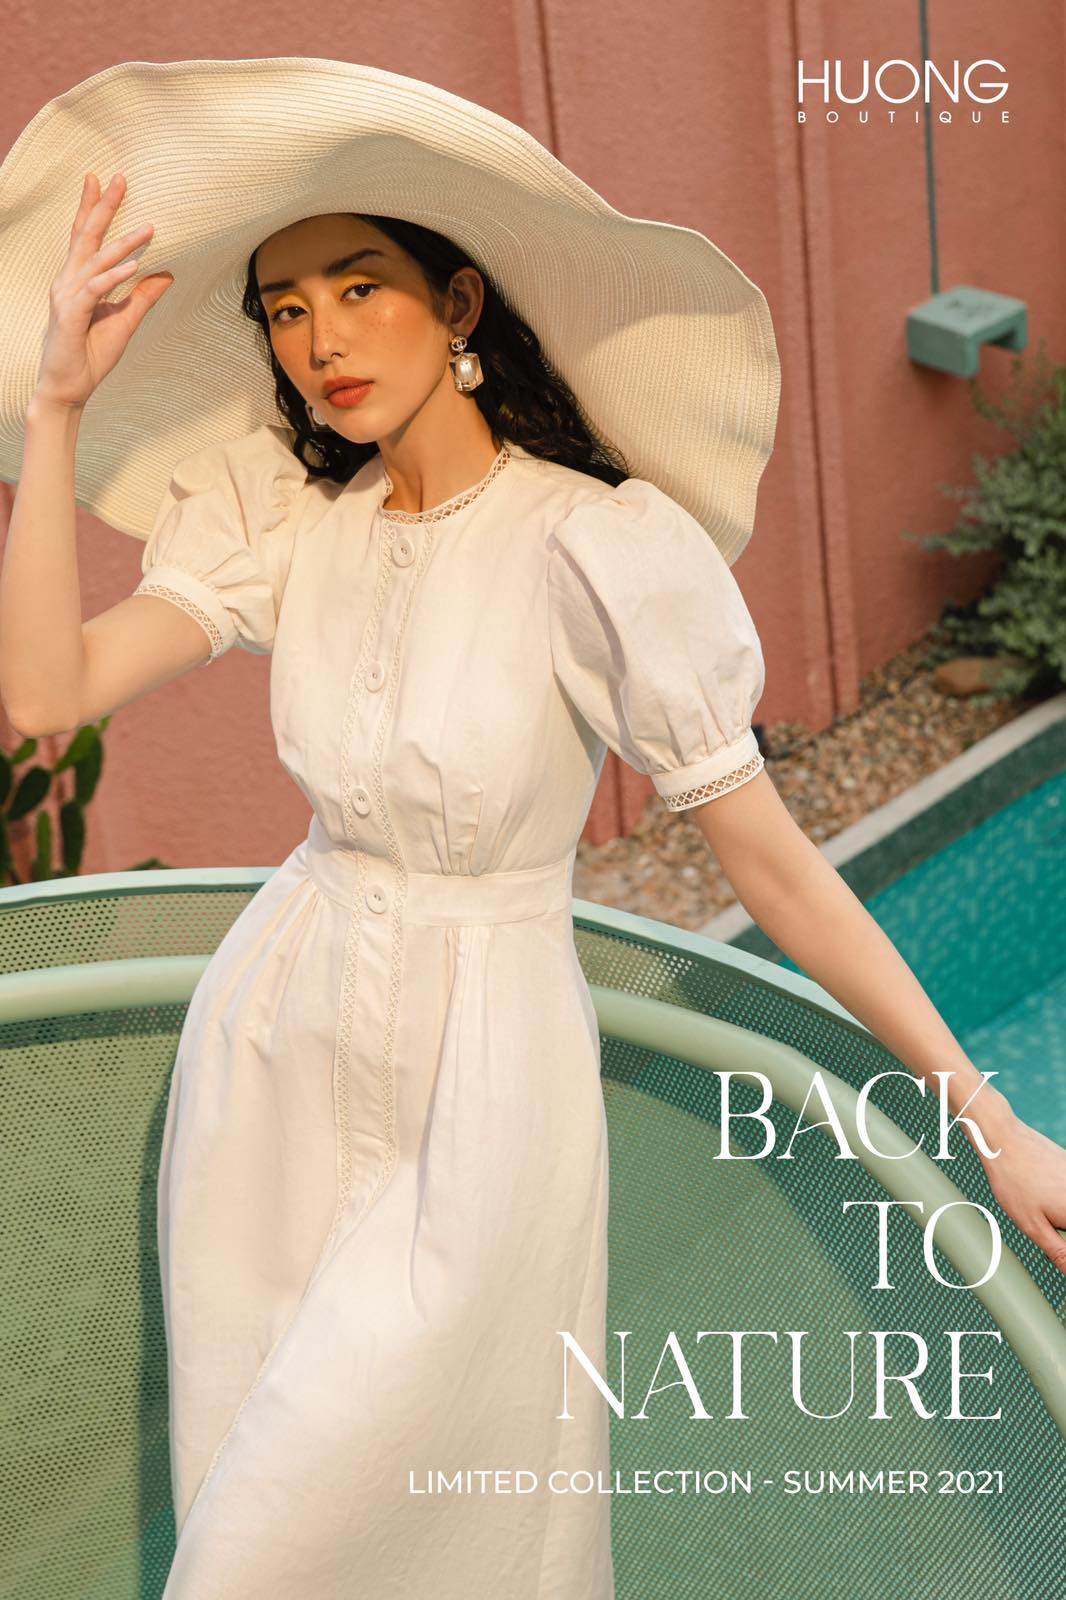 BACK TO NATURE - LINEN COLLECTION SUMMER 2021